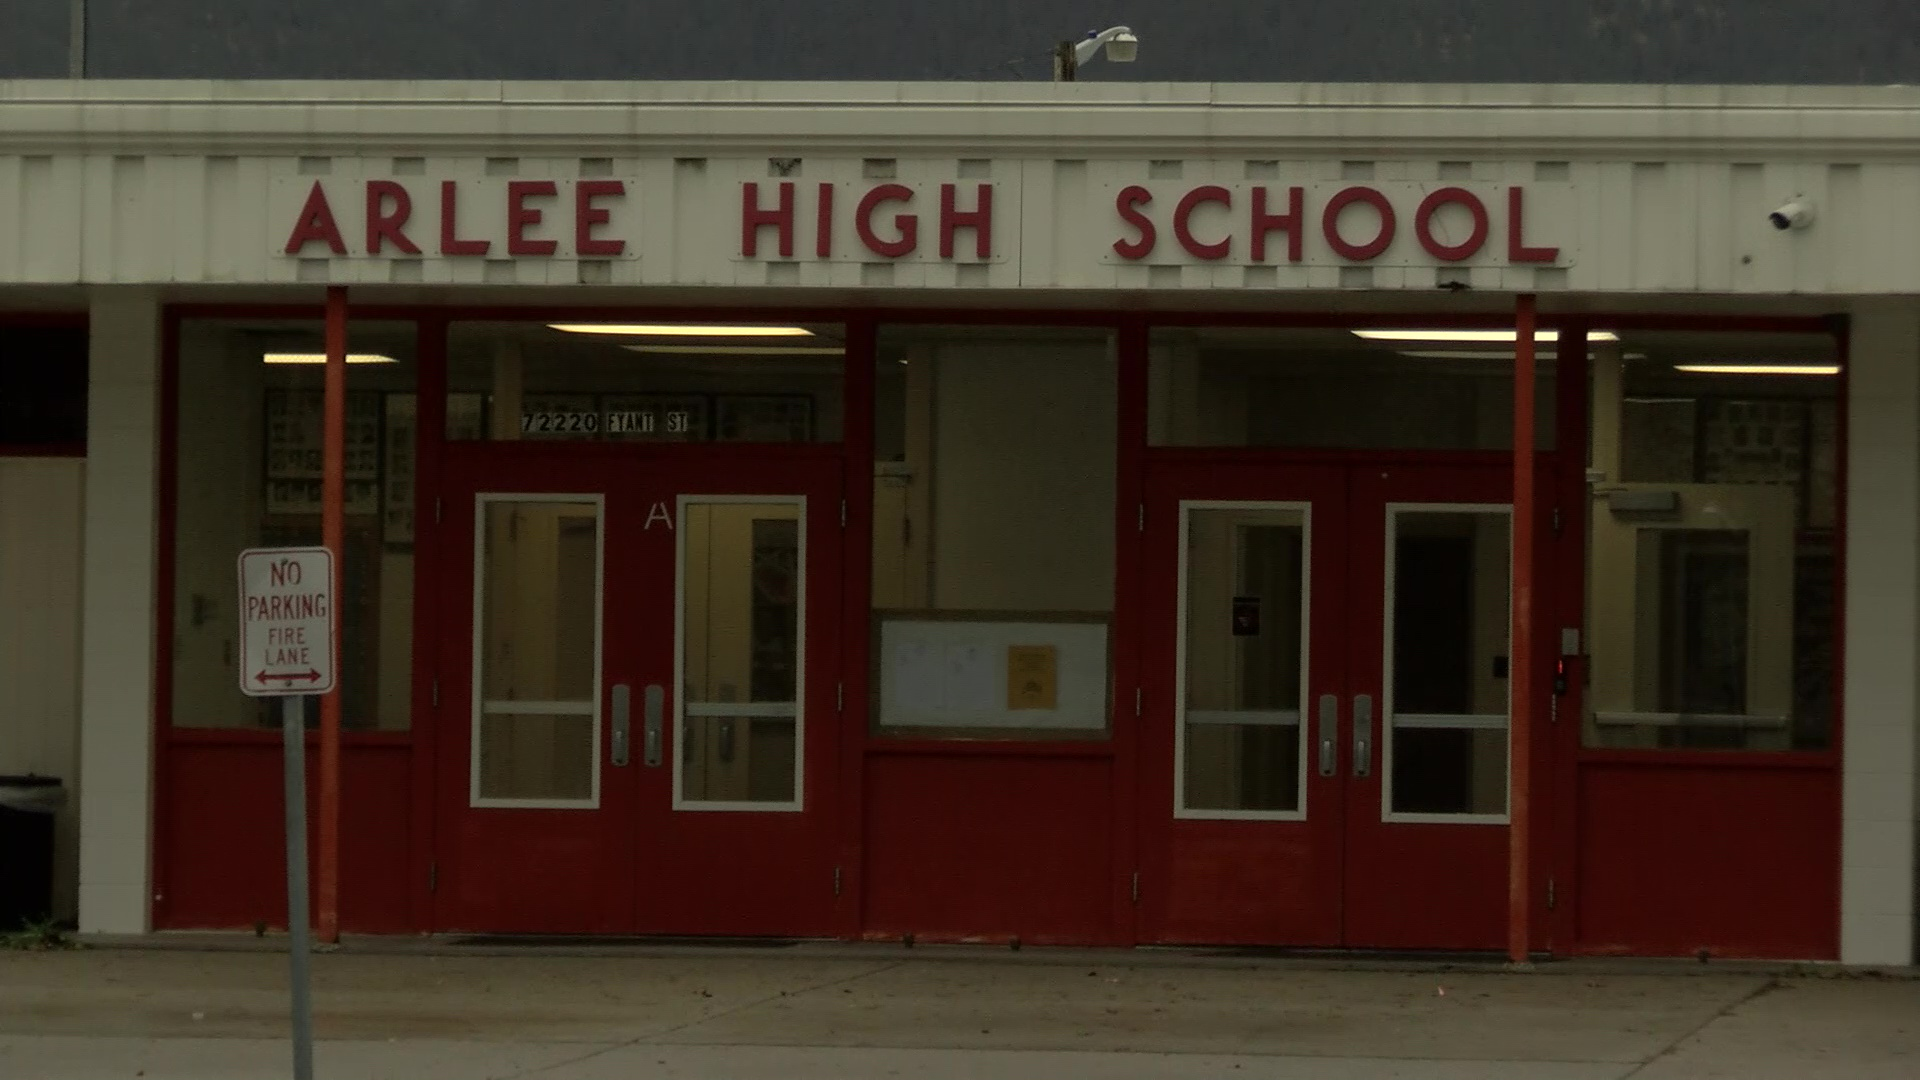 Student cited for bringing gun to school in Arlee